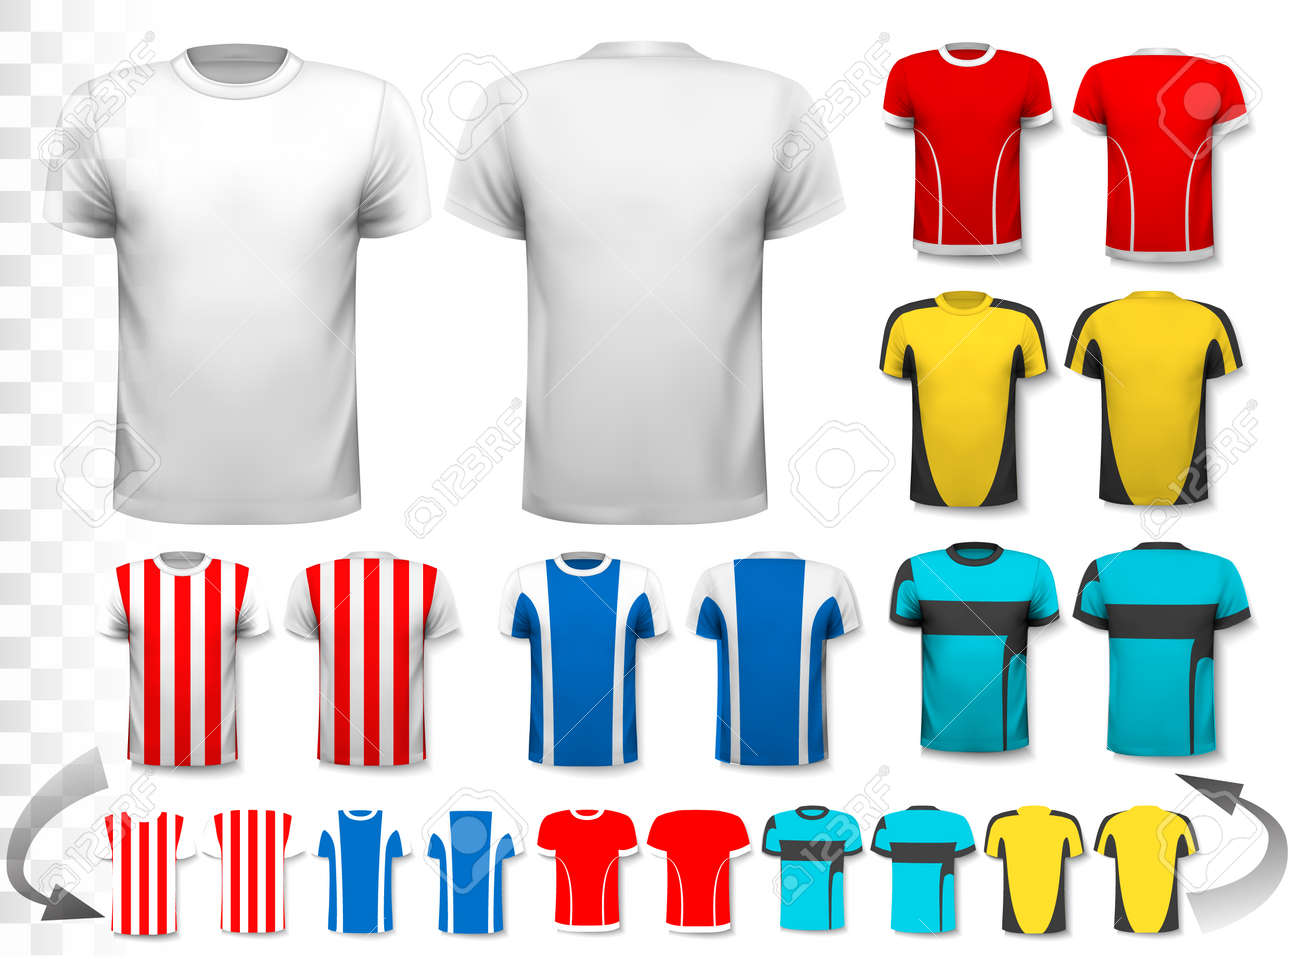 Design your own football jersey t-shirt - Collection Of Various Soccer Jerseys The T Shirt Is Transparent And Can Be Used